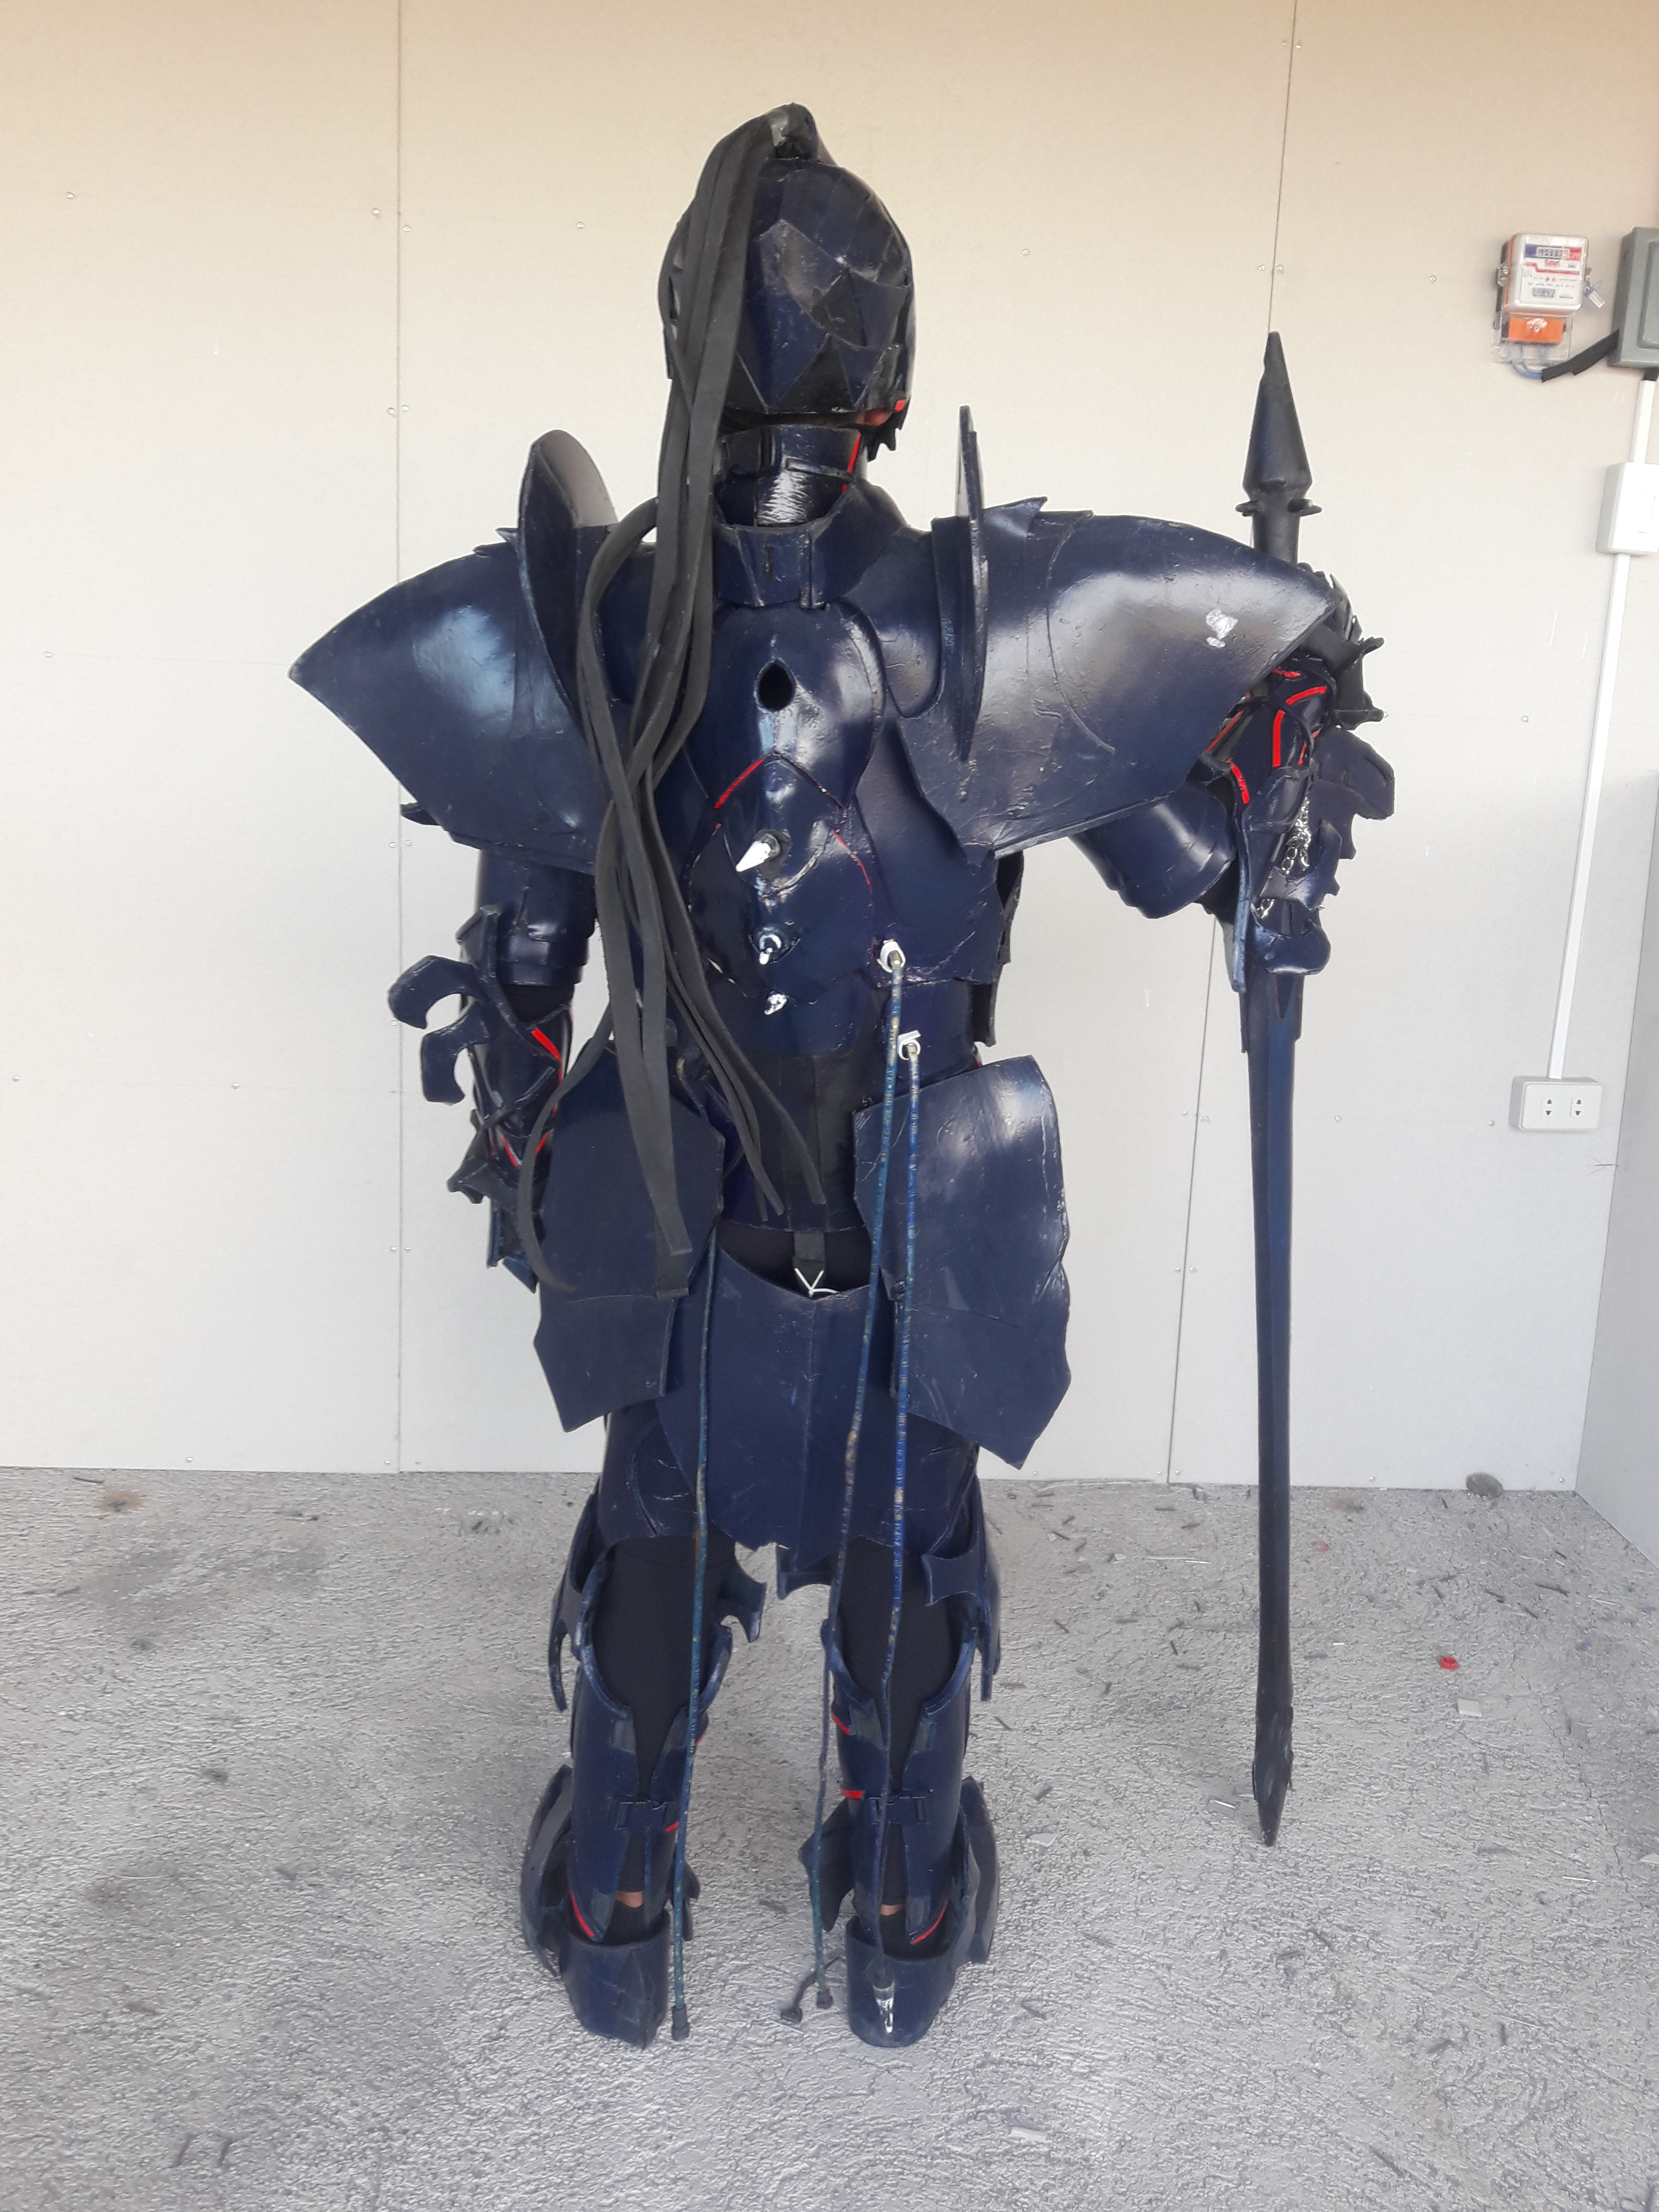 Man in black armor with sword